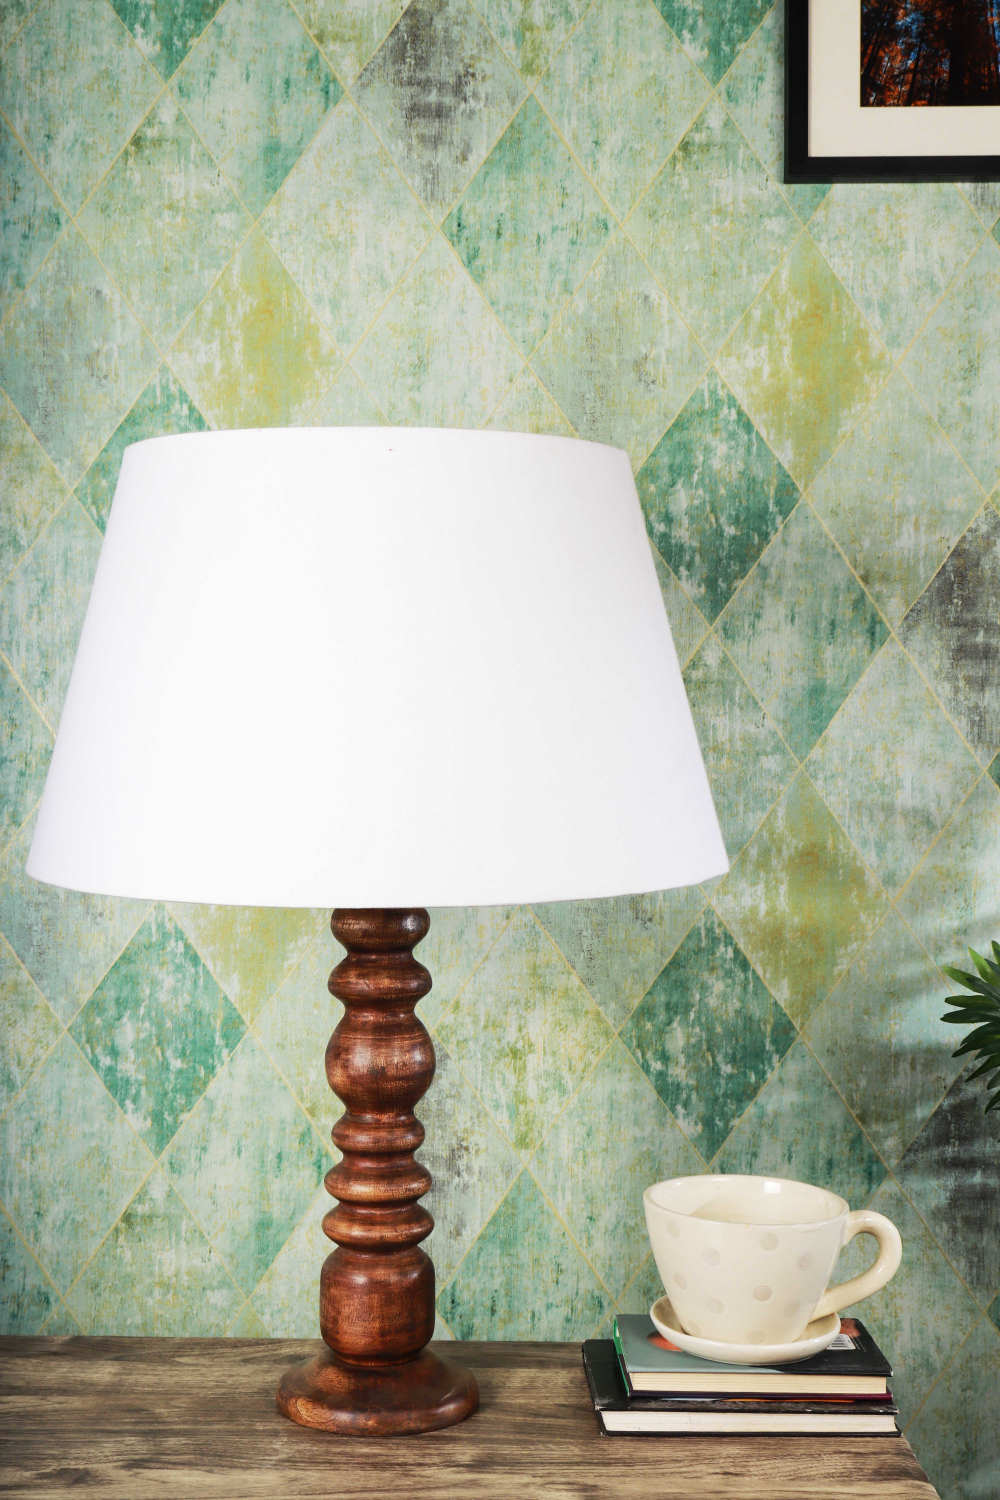 Bumpy Brown Table Lamp with Frustum White Shade